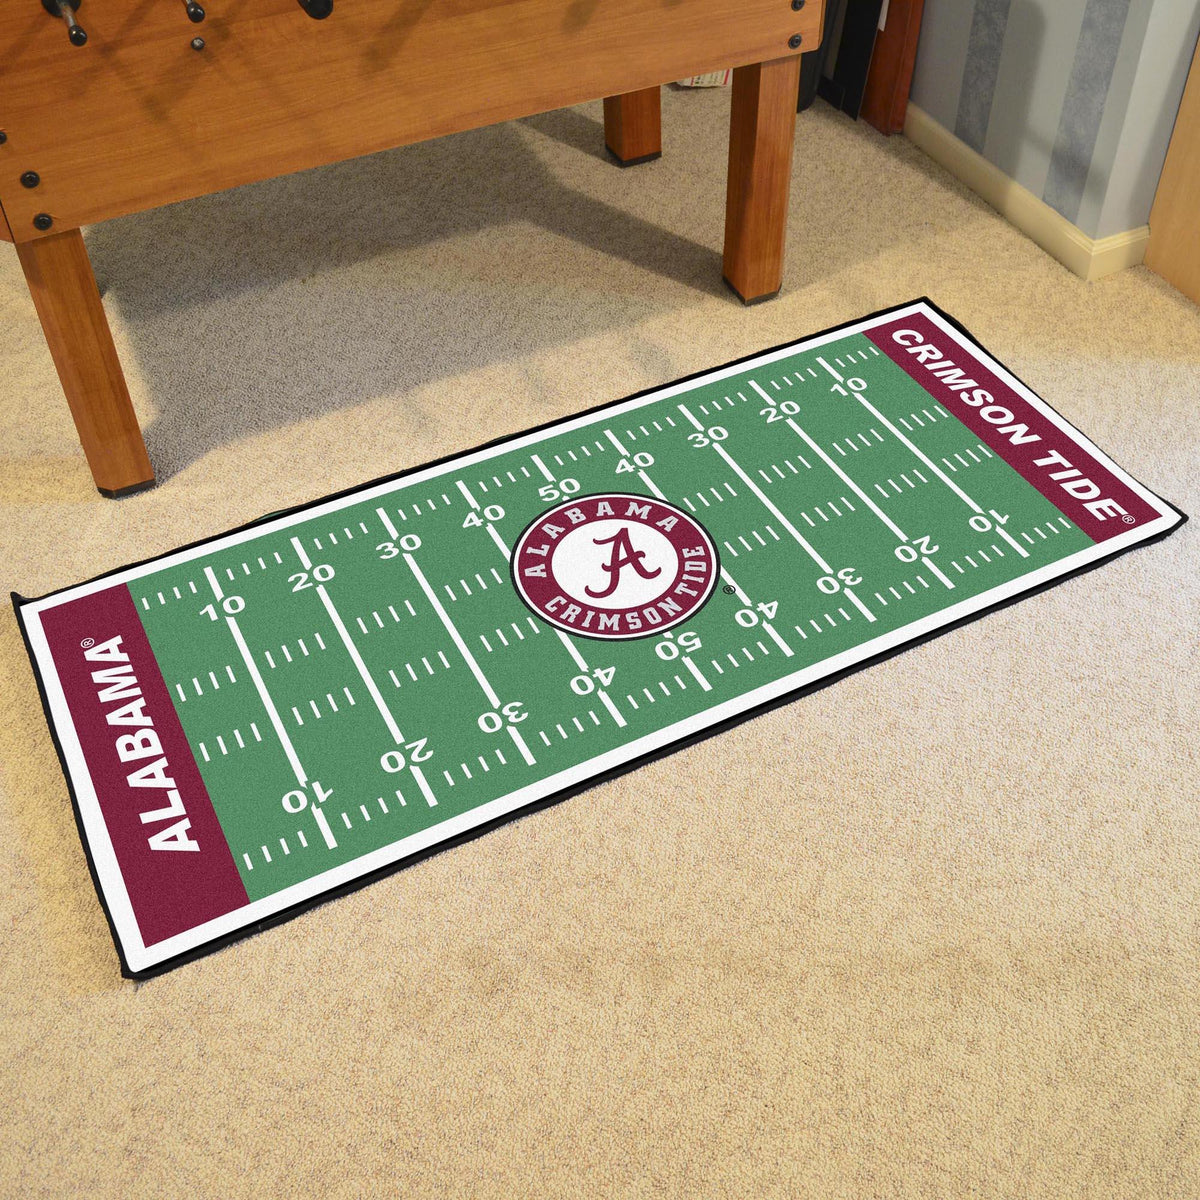 Collegiate - Football Field Runner Collegiate Mats, Rectangular Mats, Football Field Runner, Collegiate, Home Fan Mats Alabama